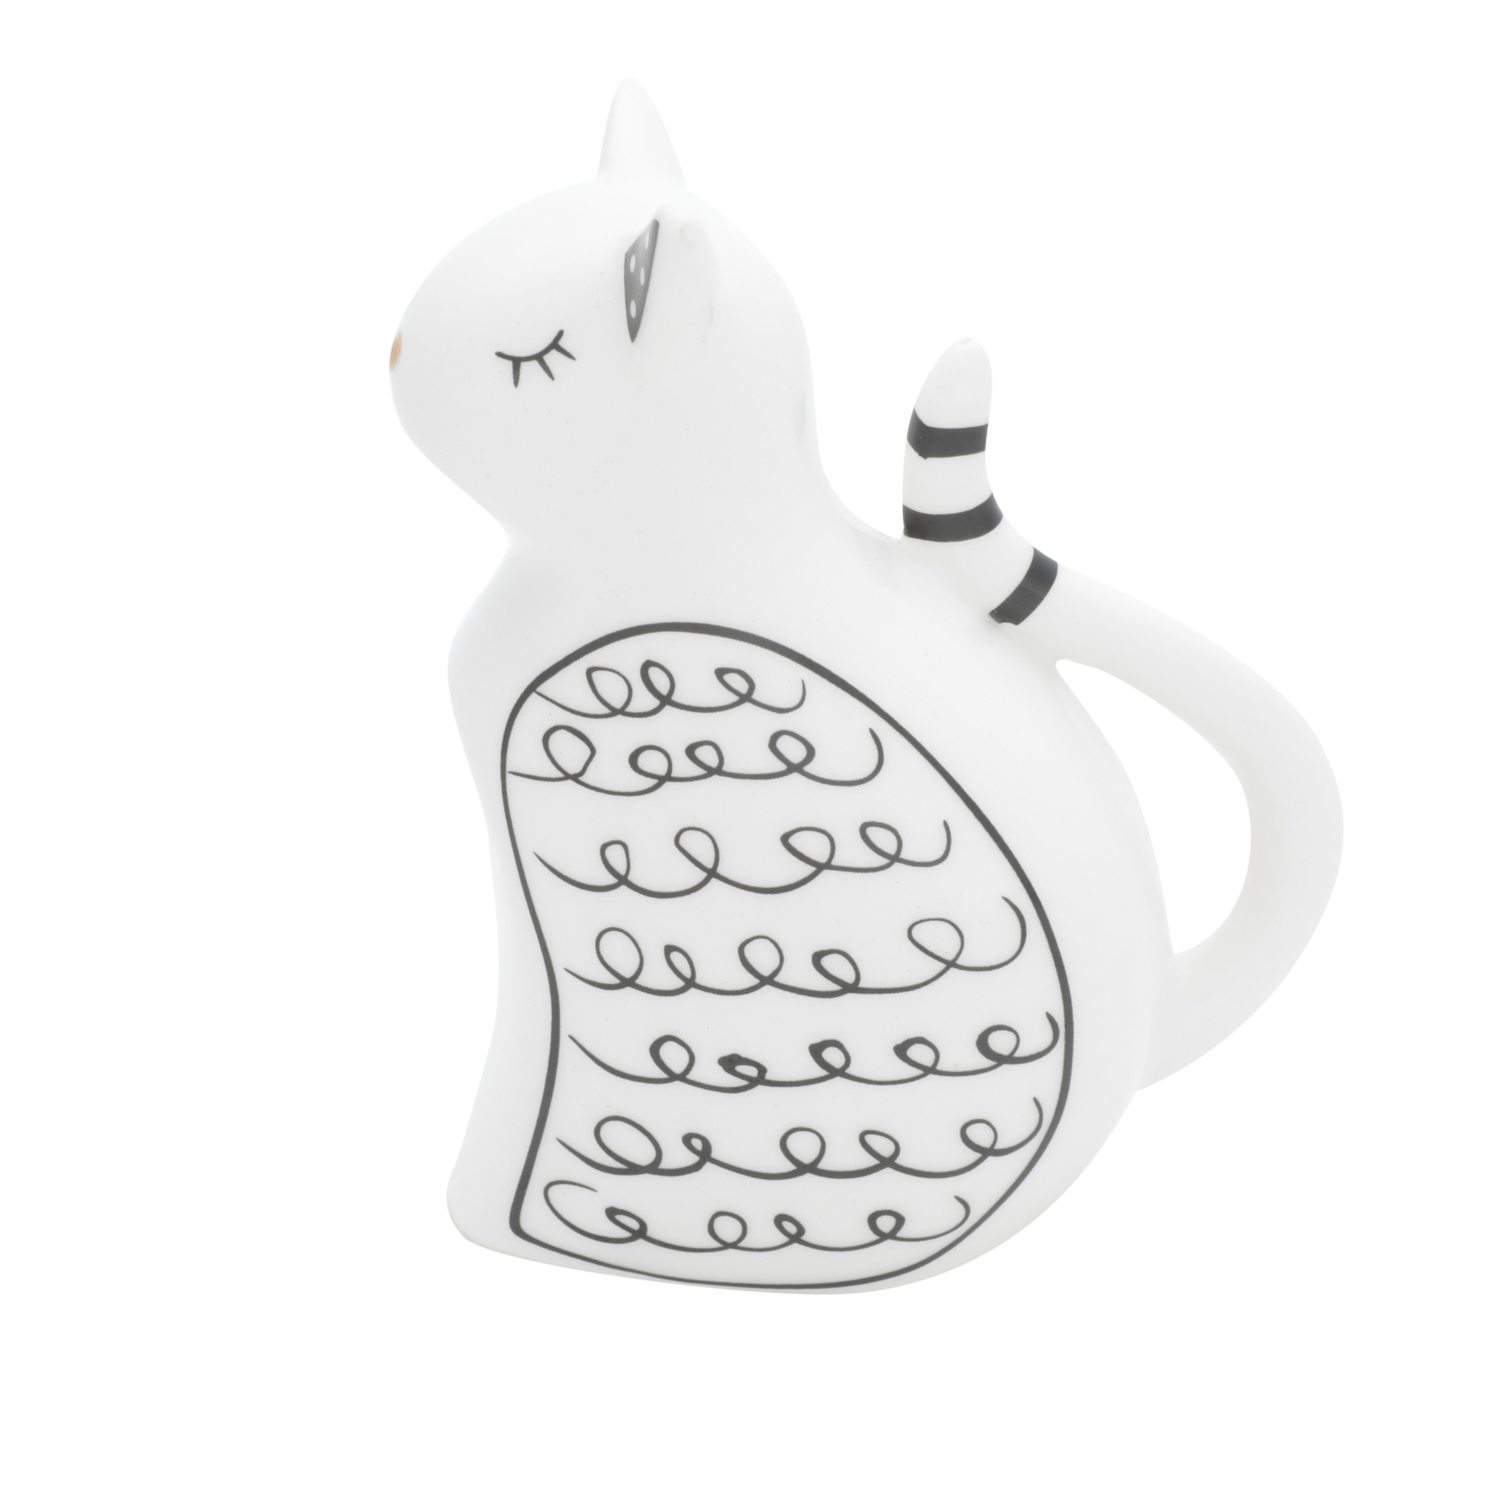 Gato de Porcelana Lovely Cat Branco 5,5X9,6X11,5Cm